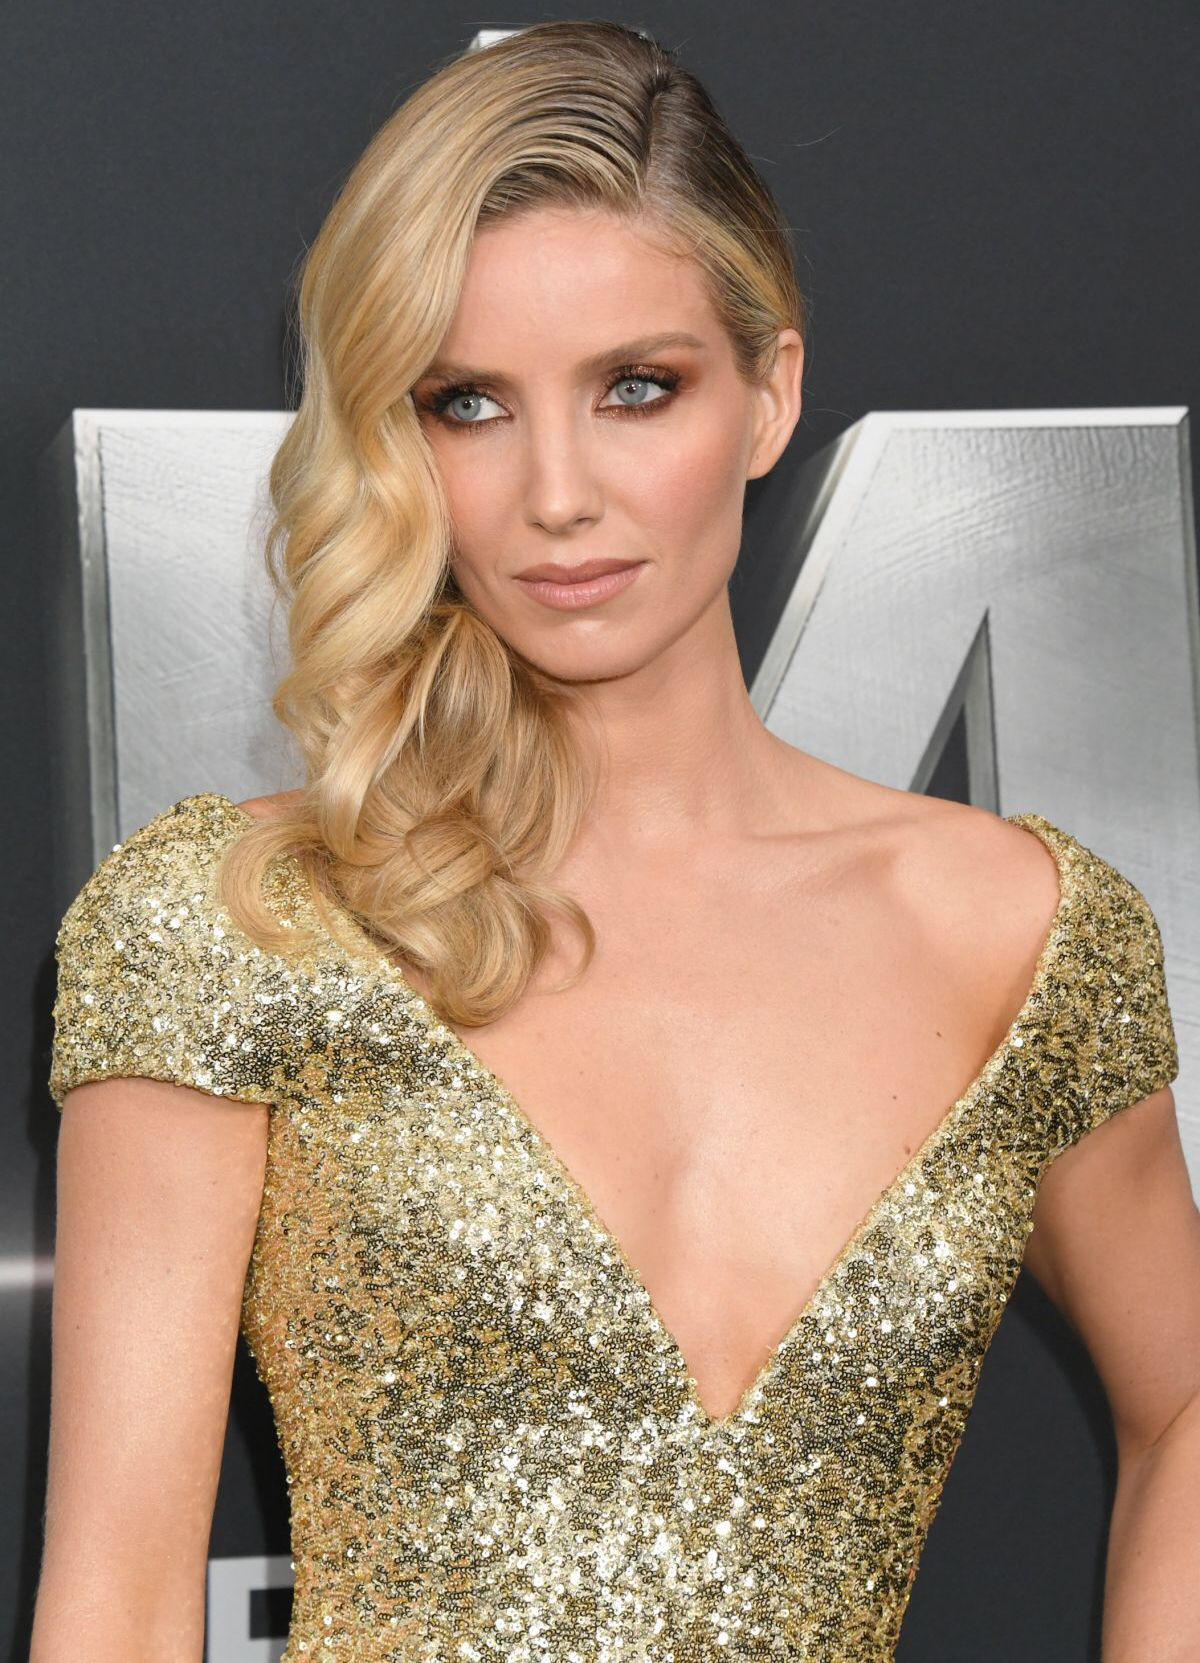 Celebrites Annabelle Wallis nude photos 2019